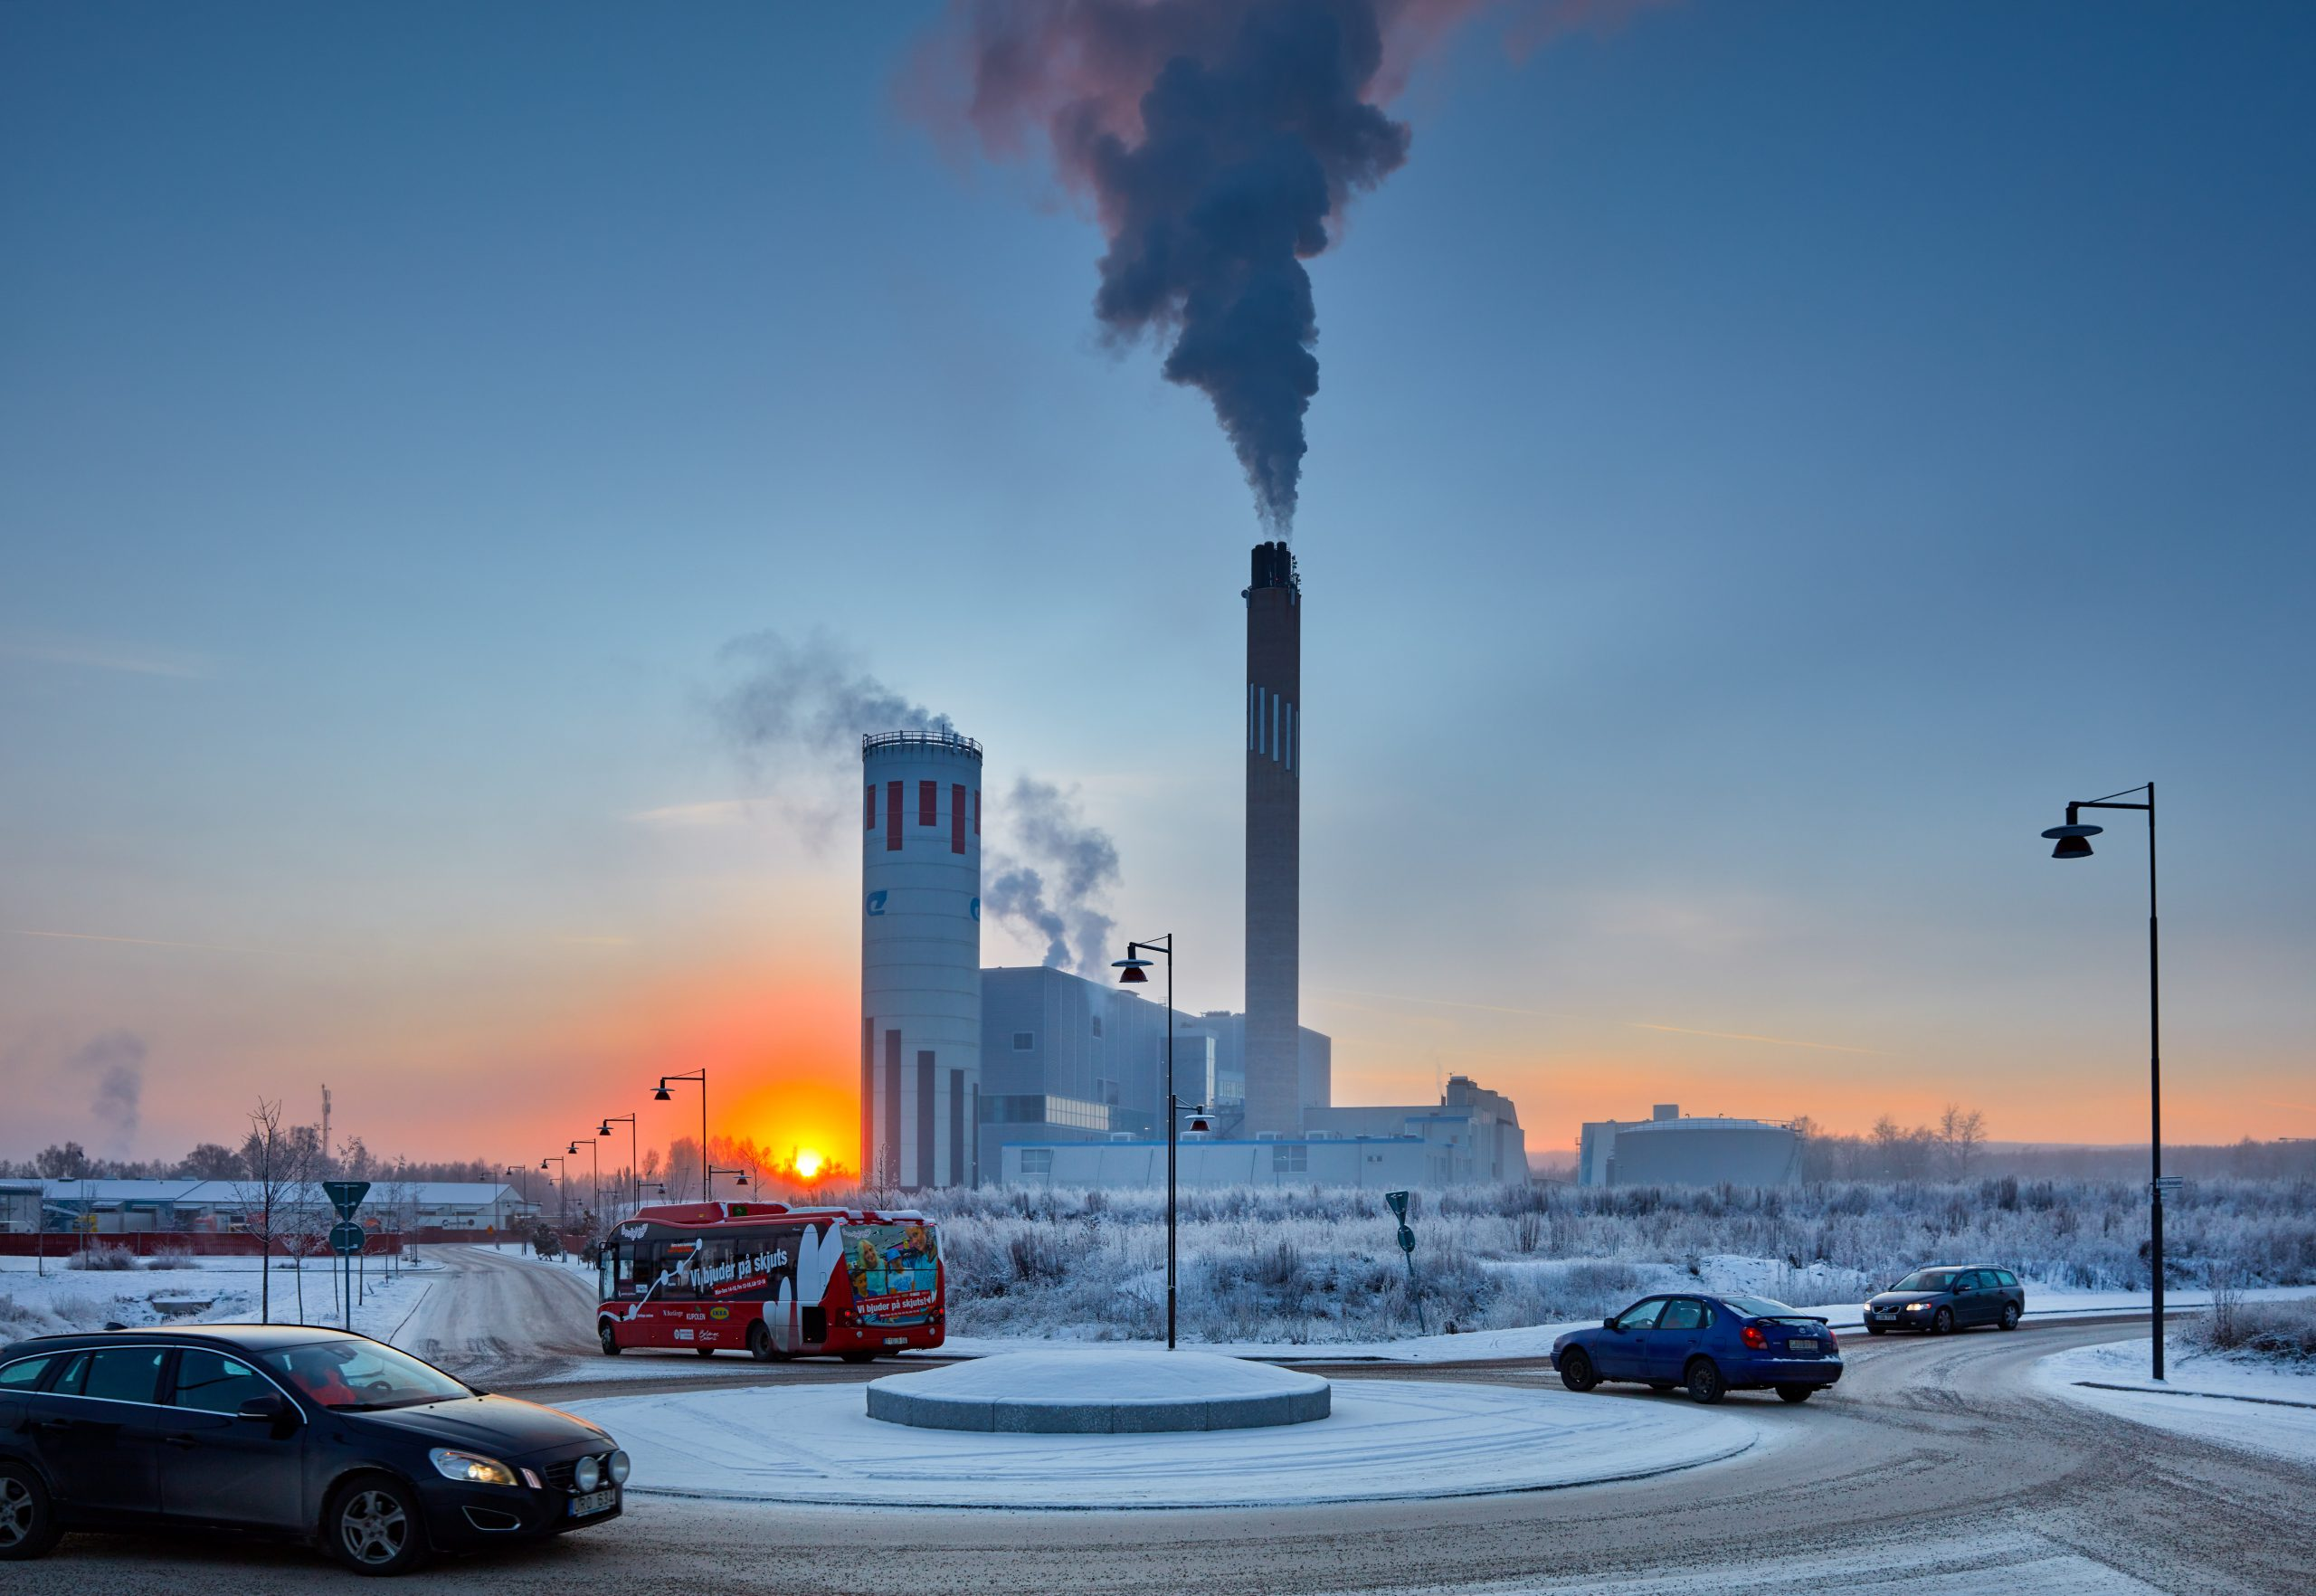 Bäckelund plant in sunset